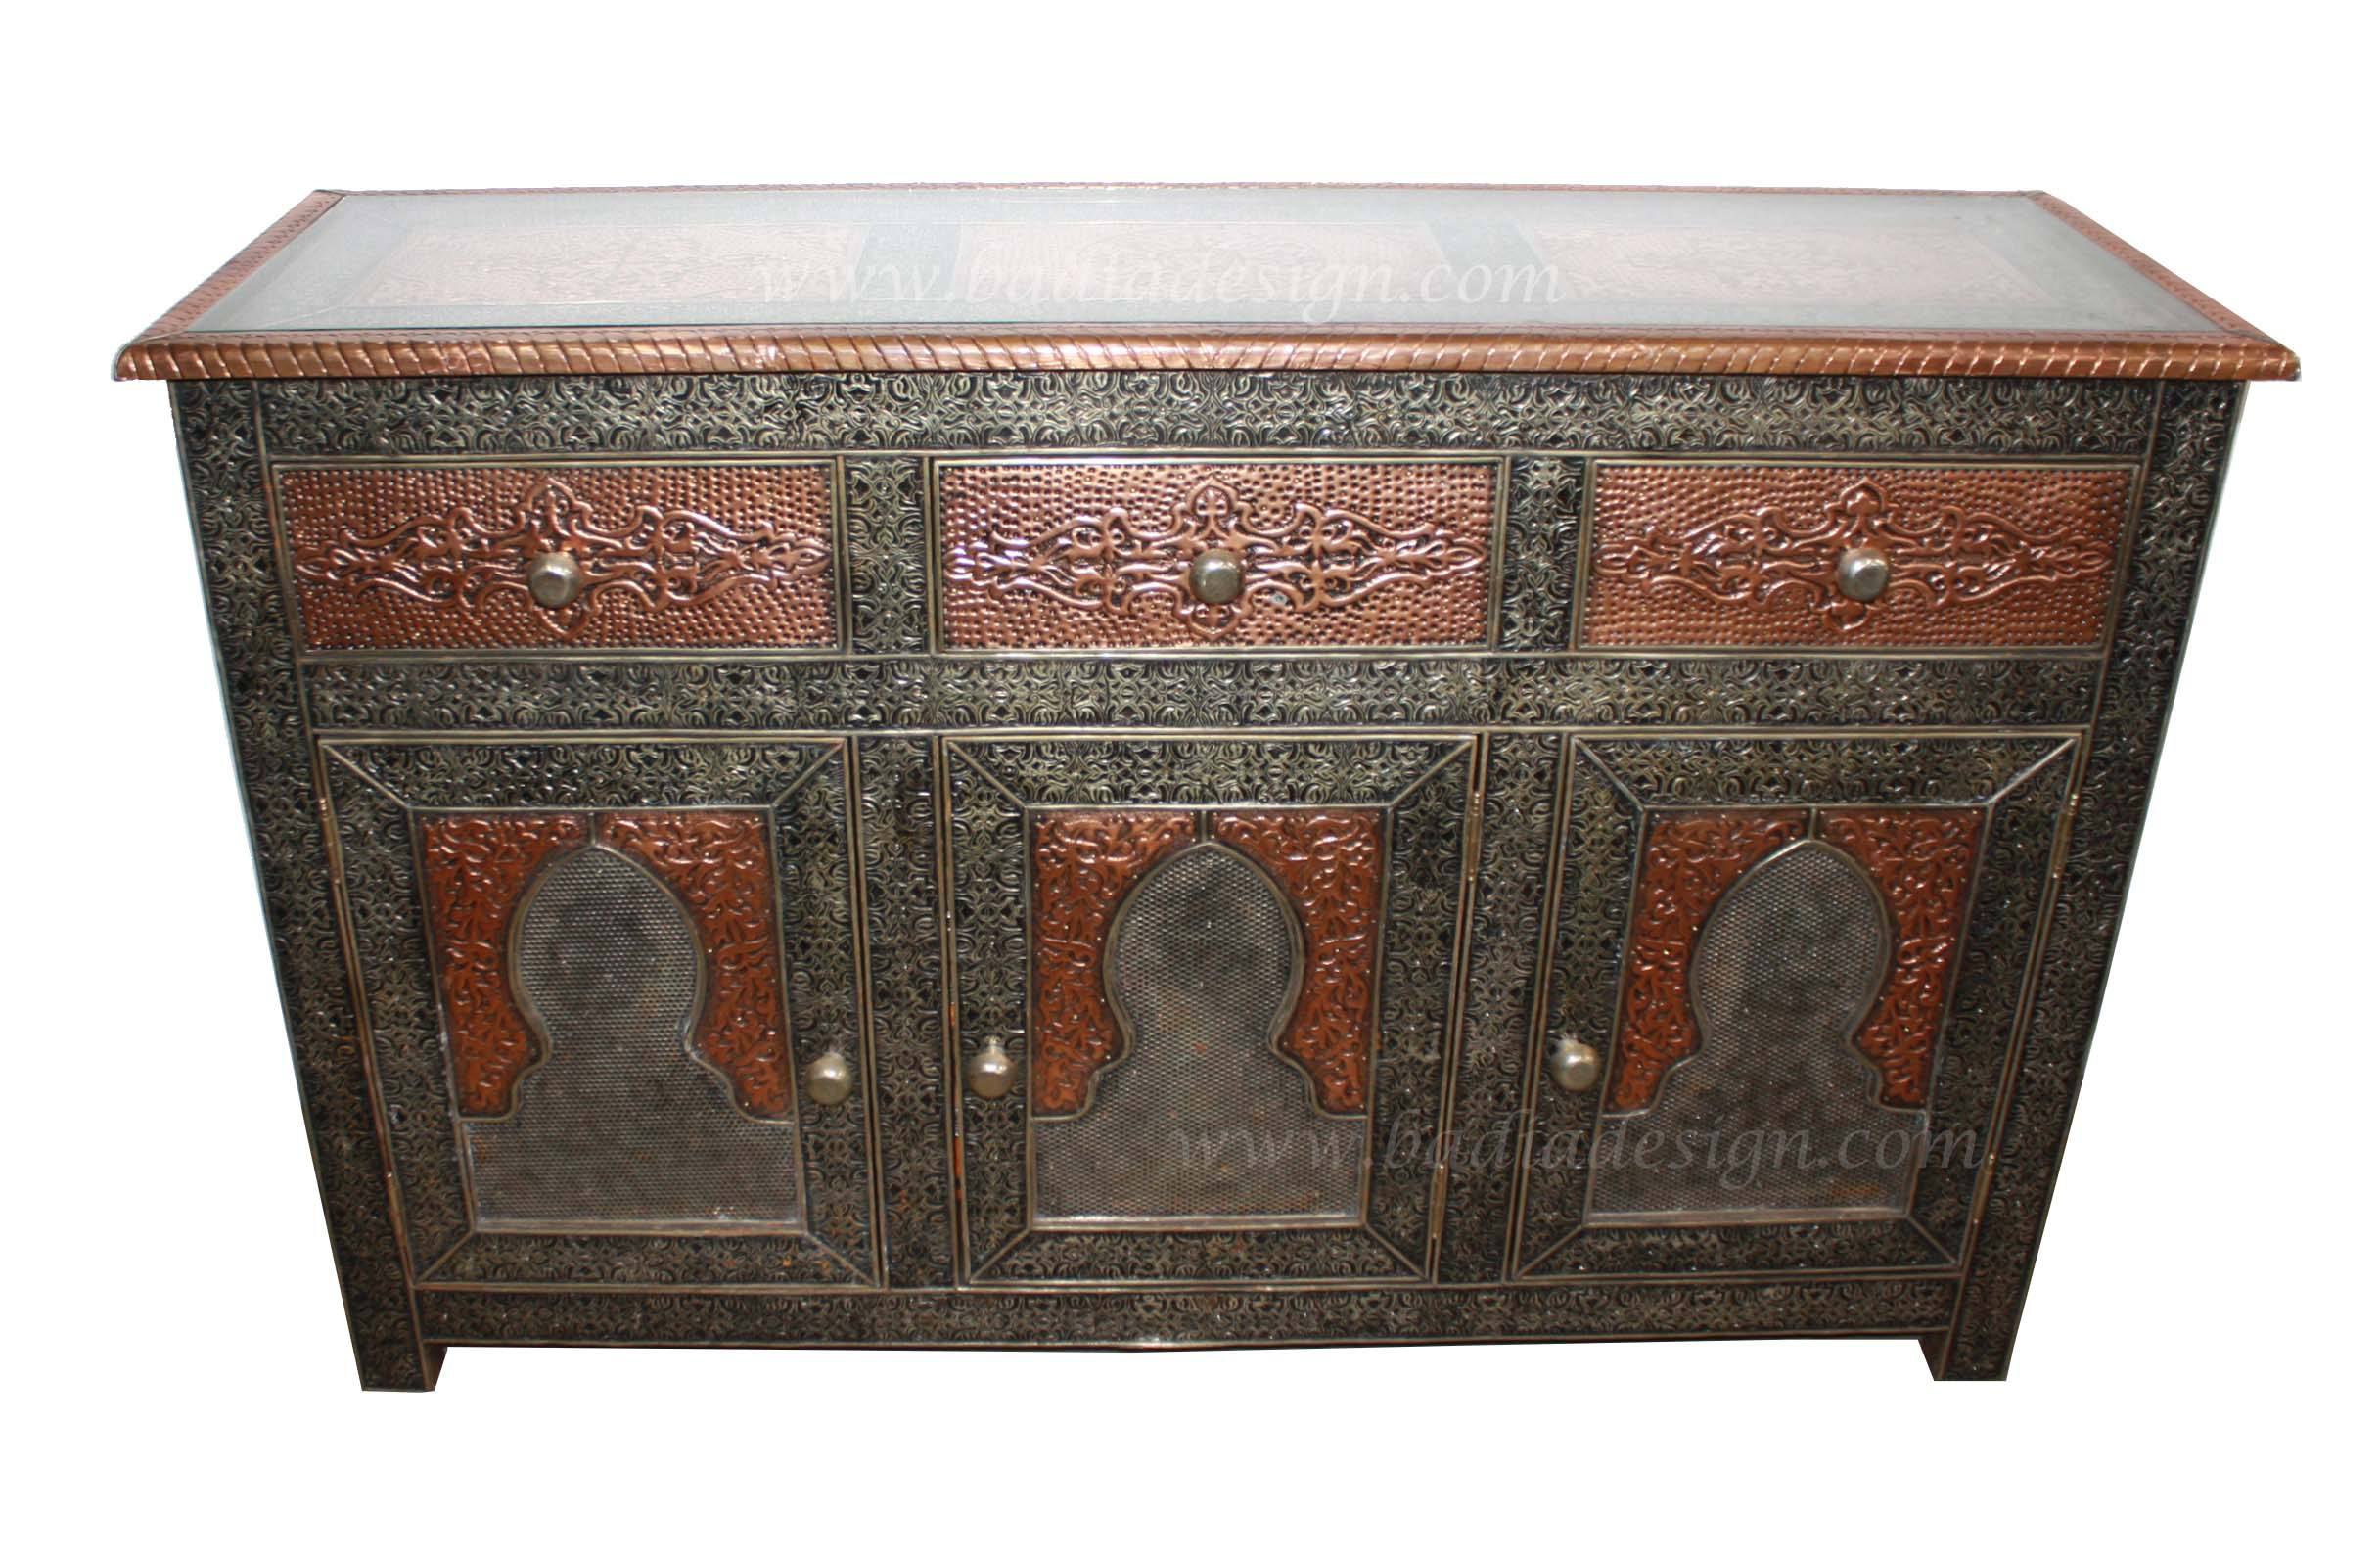 moroccan-silver-nickel-and-brass-cabinet-nk-ca039-1.jpg